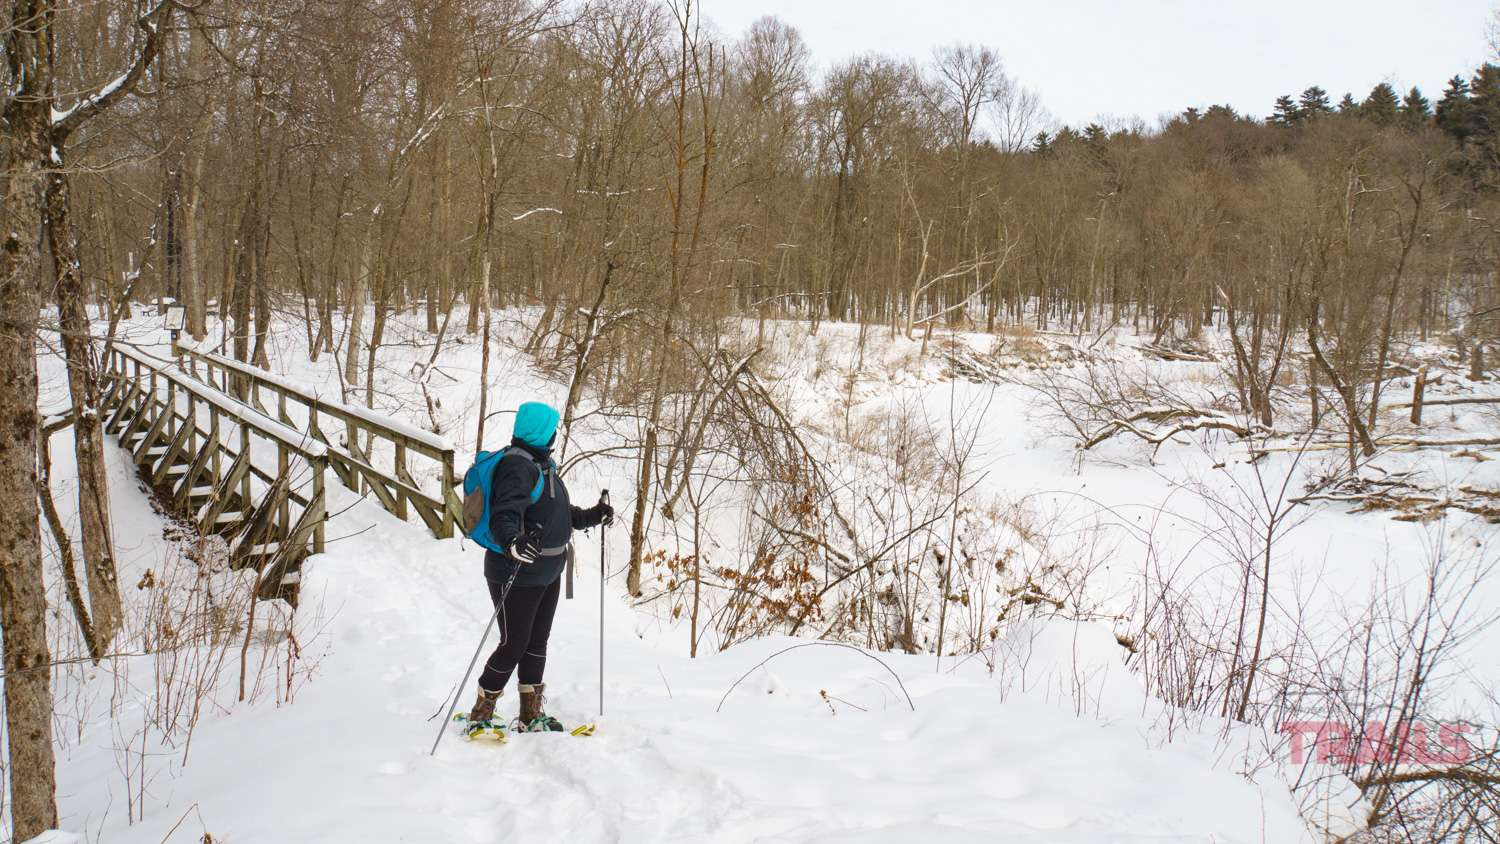 A woman on snowshoes crosses a bridge on the winter